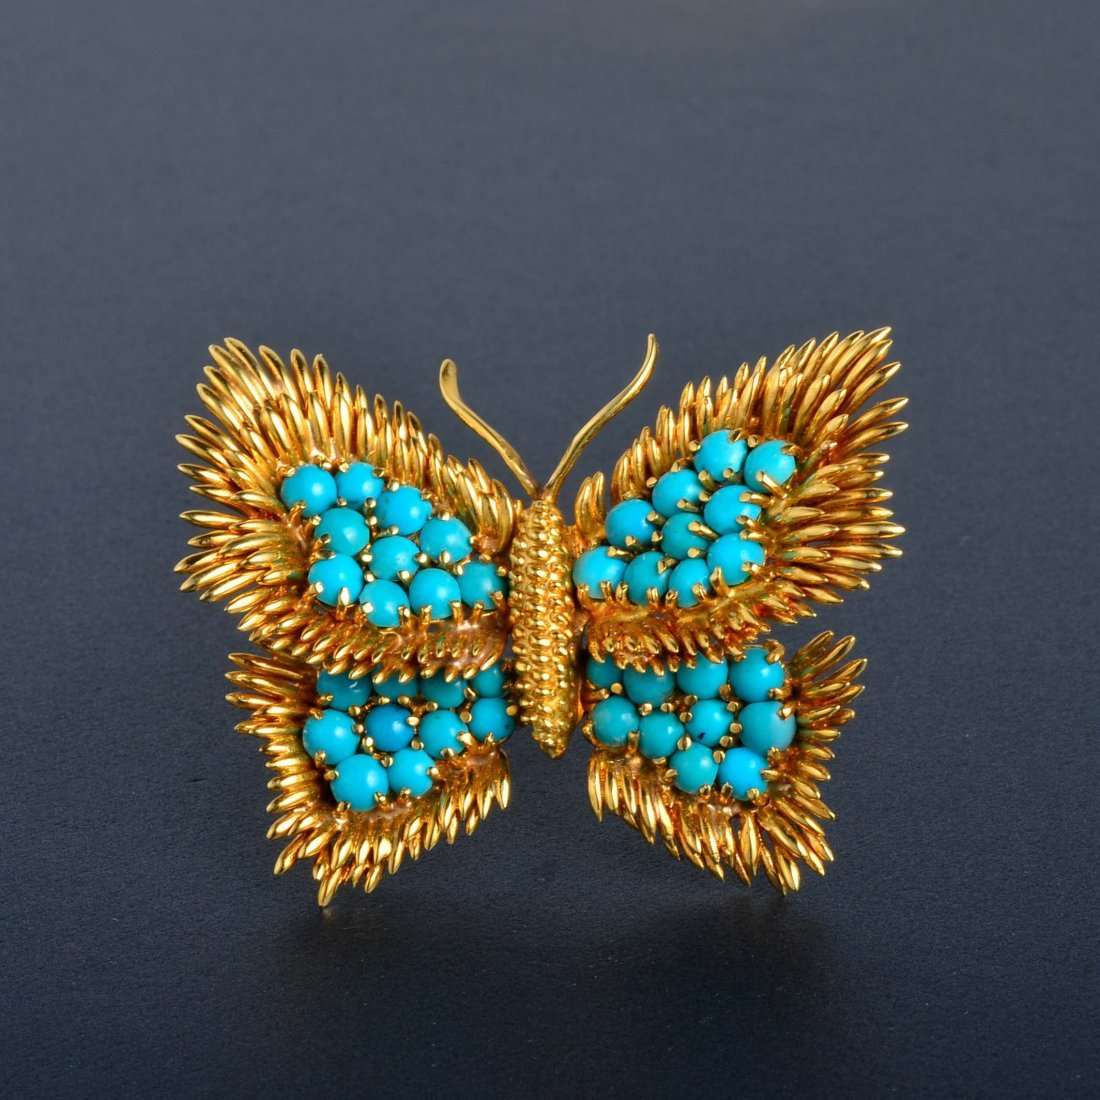 18: Tiffany 18k Gold and Turquoise Butterfly Brooch